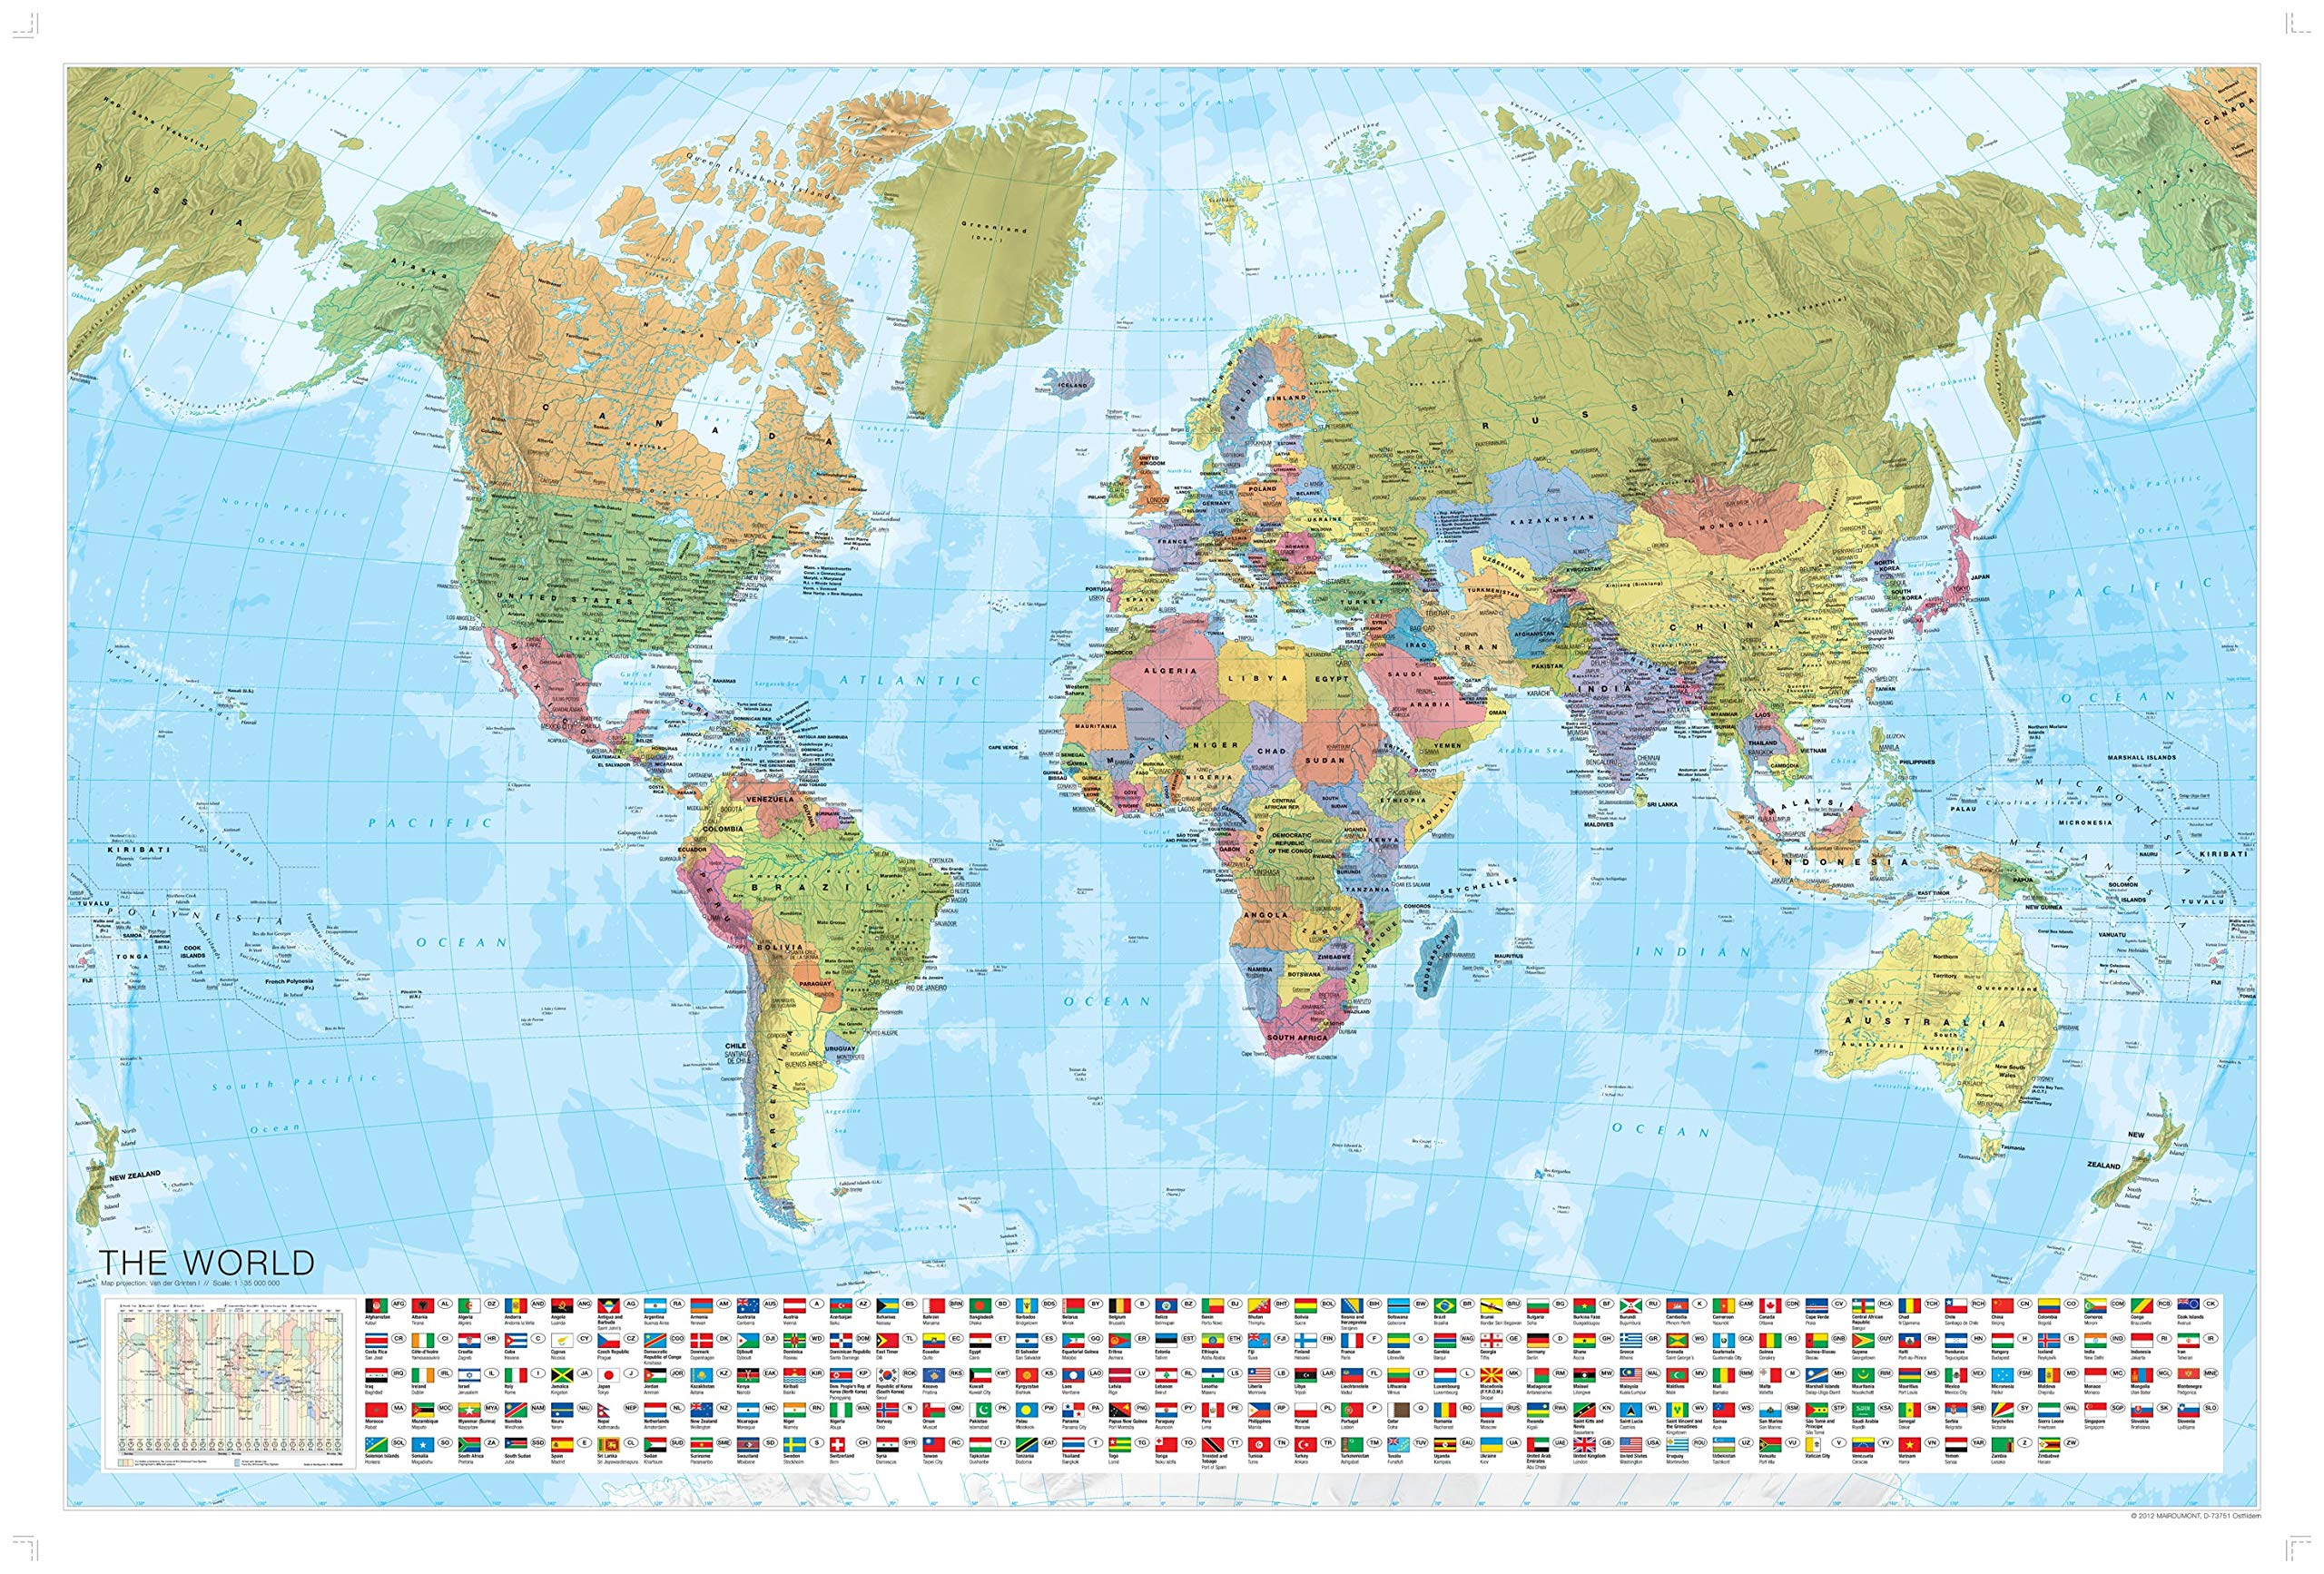 Whole Map Of The World.Marco Polo Laminated World Wall Map Marco Polo Maps